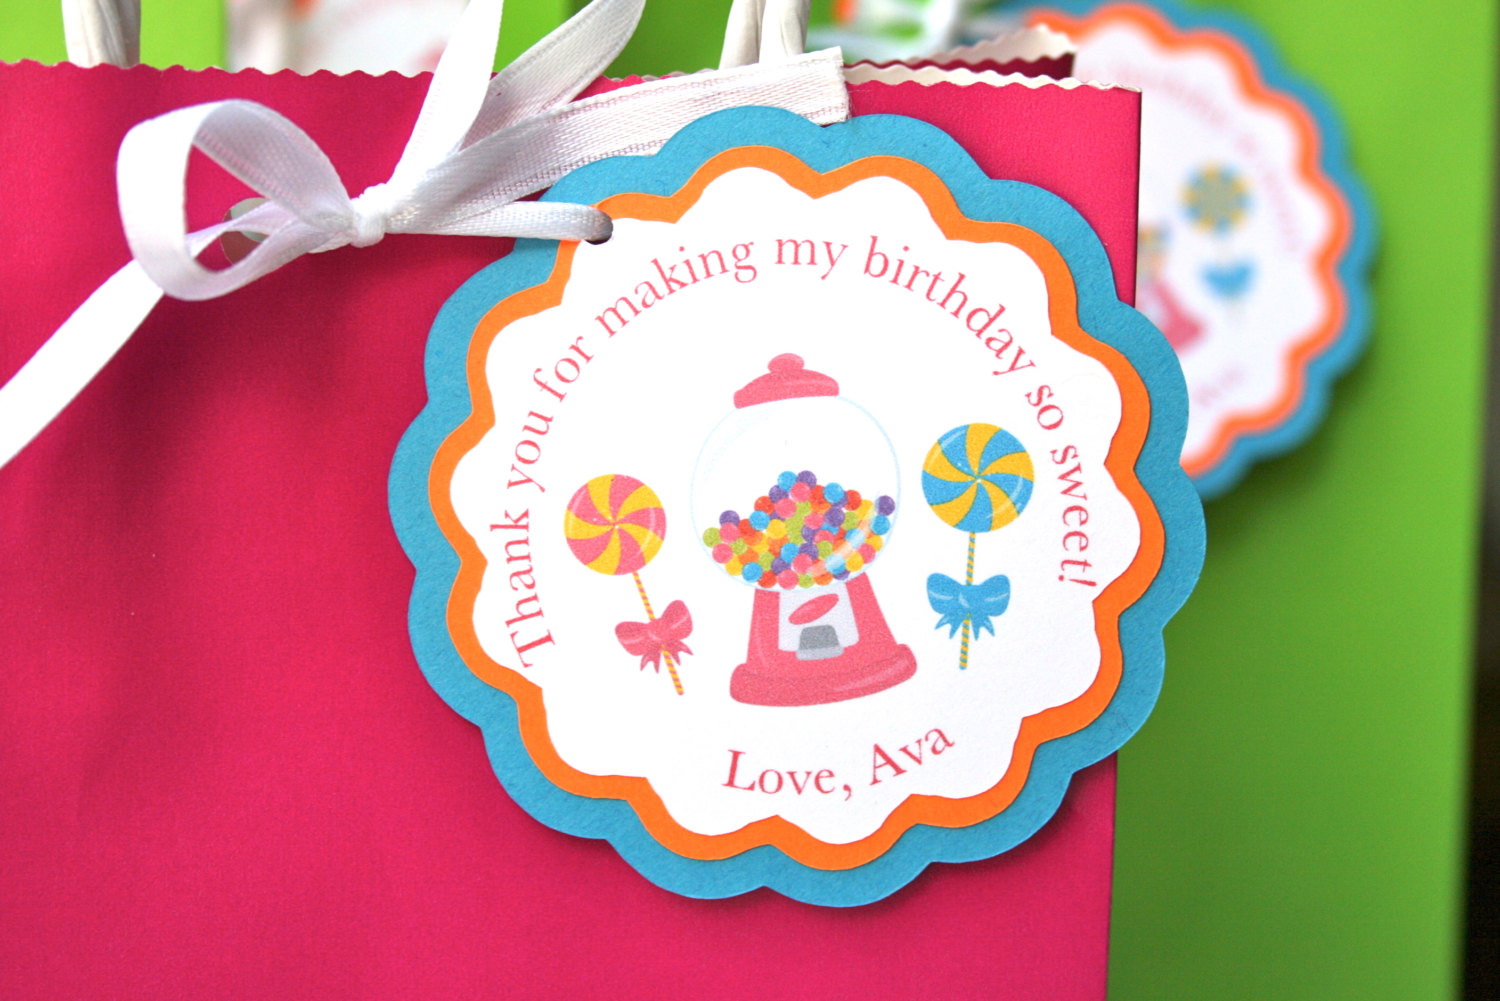 birthday bag tags ; birthday-bag-tags-candy-land-theme-party-thank-you-gift-tags-goodie-bag-tags-tags-for-goodie-bags-l-46ac2caef186476d